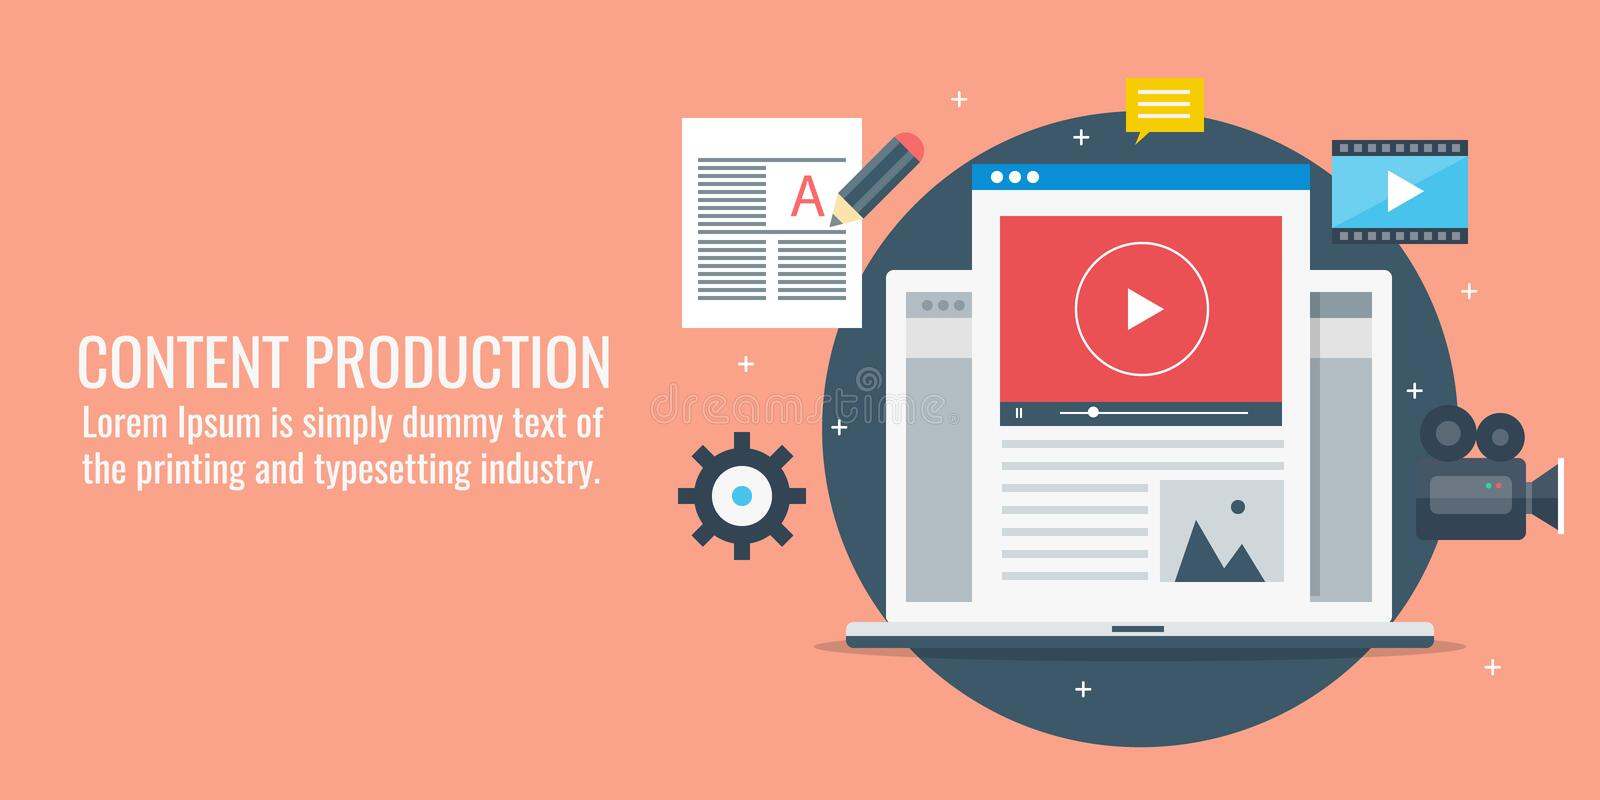 Content production, development, blogging, video content, article writing concept. Flat design vector illustration. royalty free illustration